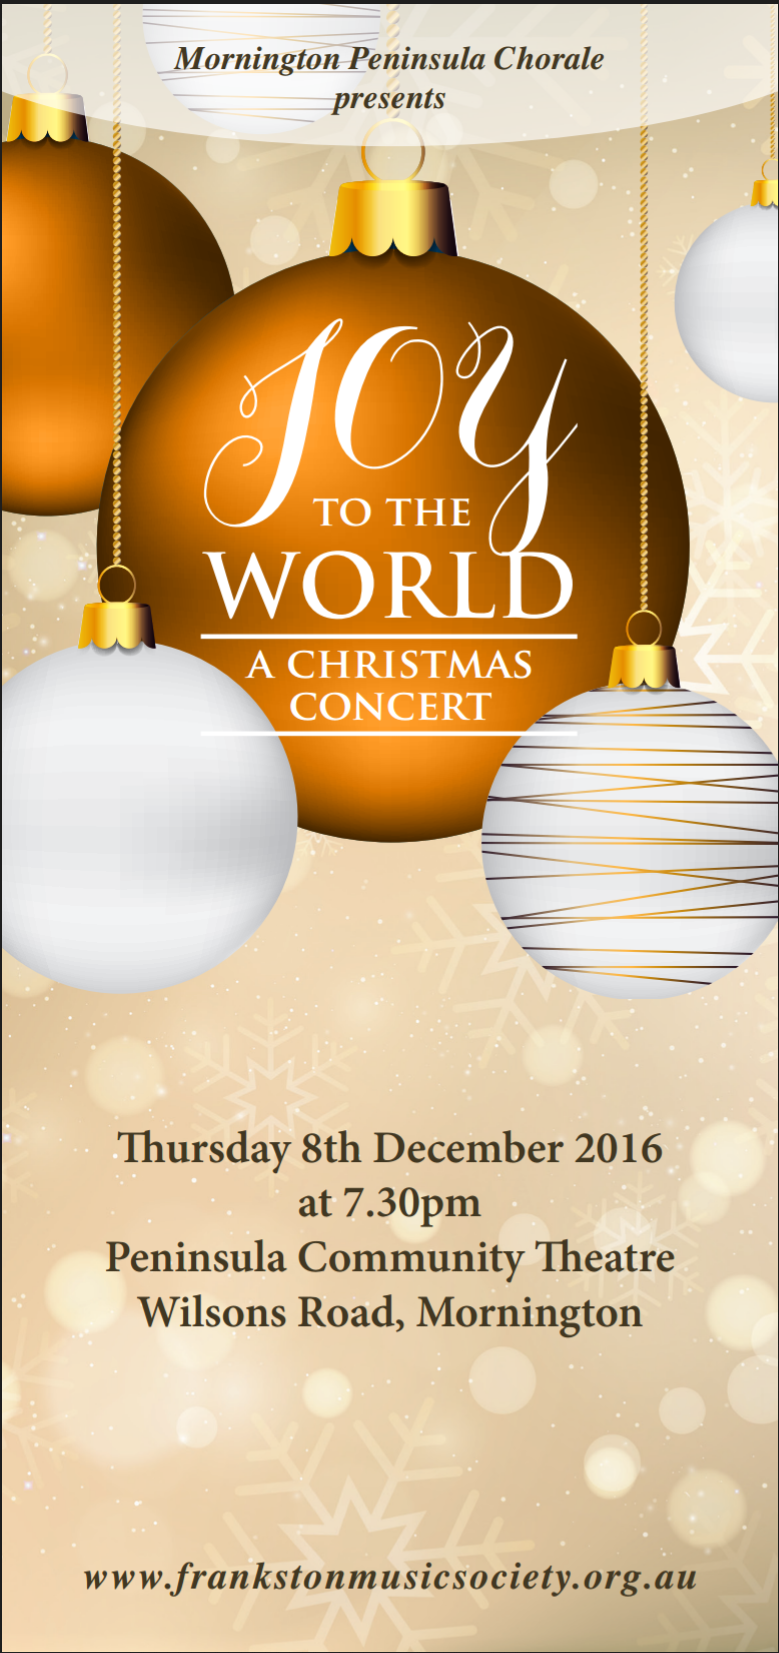 concert flyers frankston music society concerts in 2016